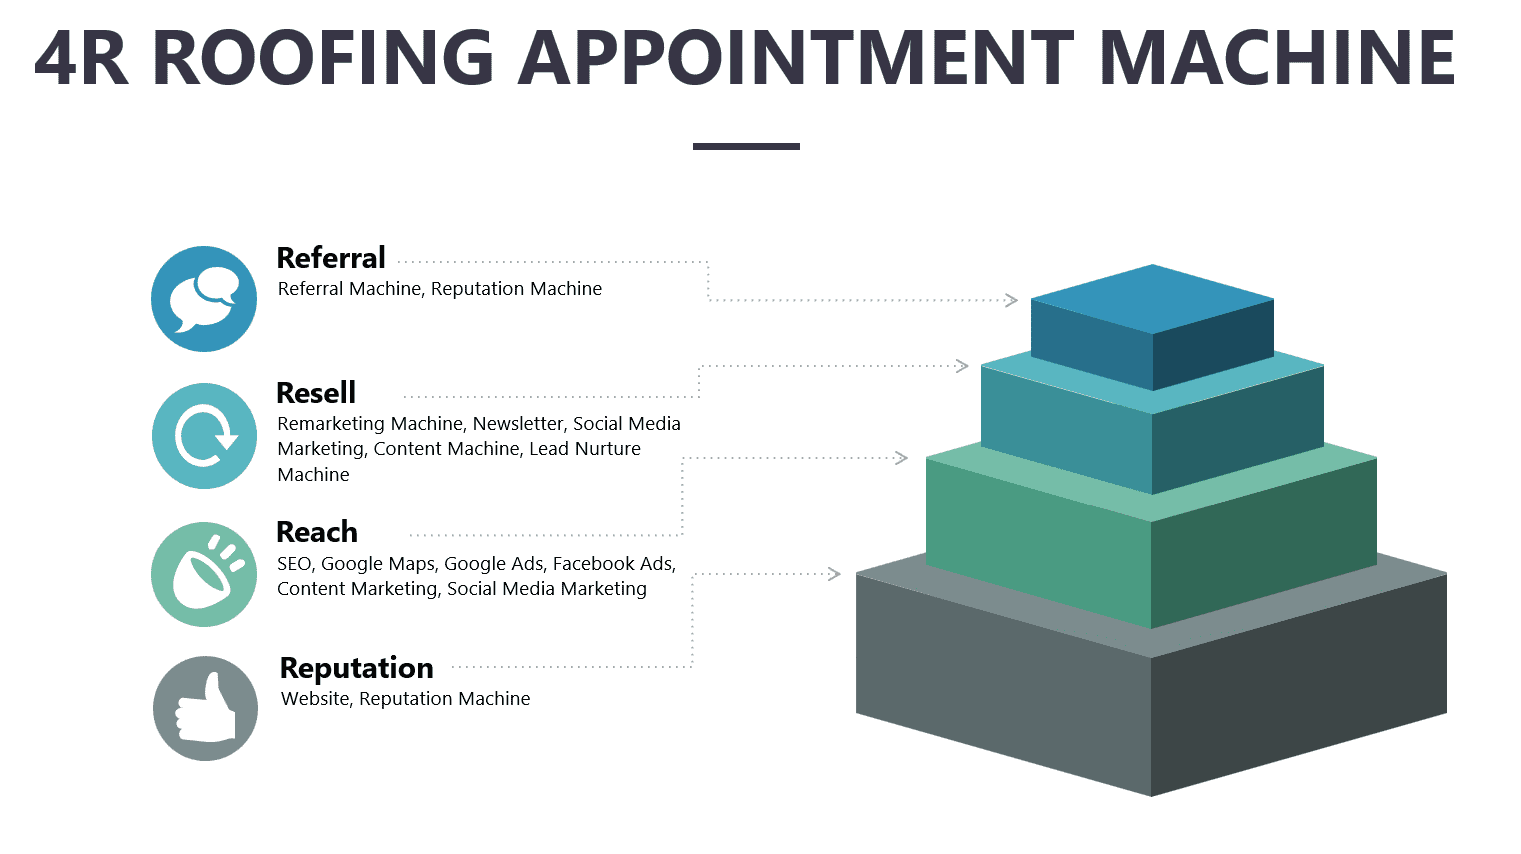 4R Roofing Appointment Machine